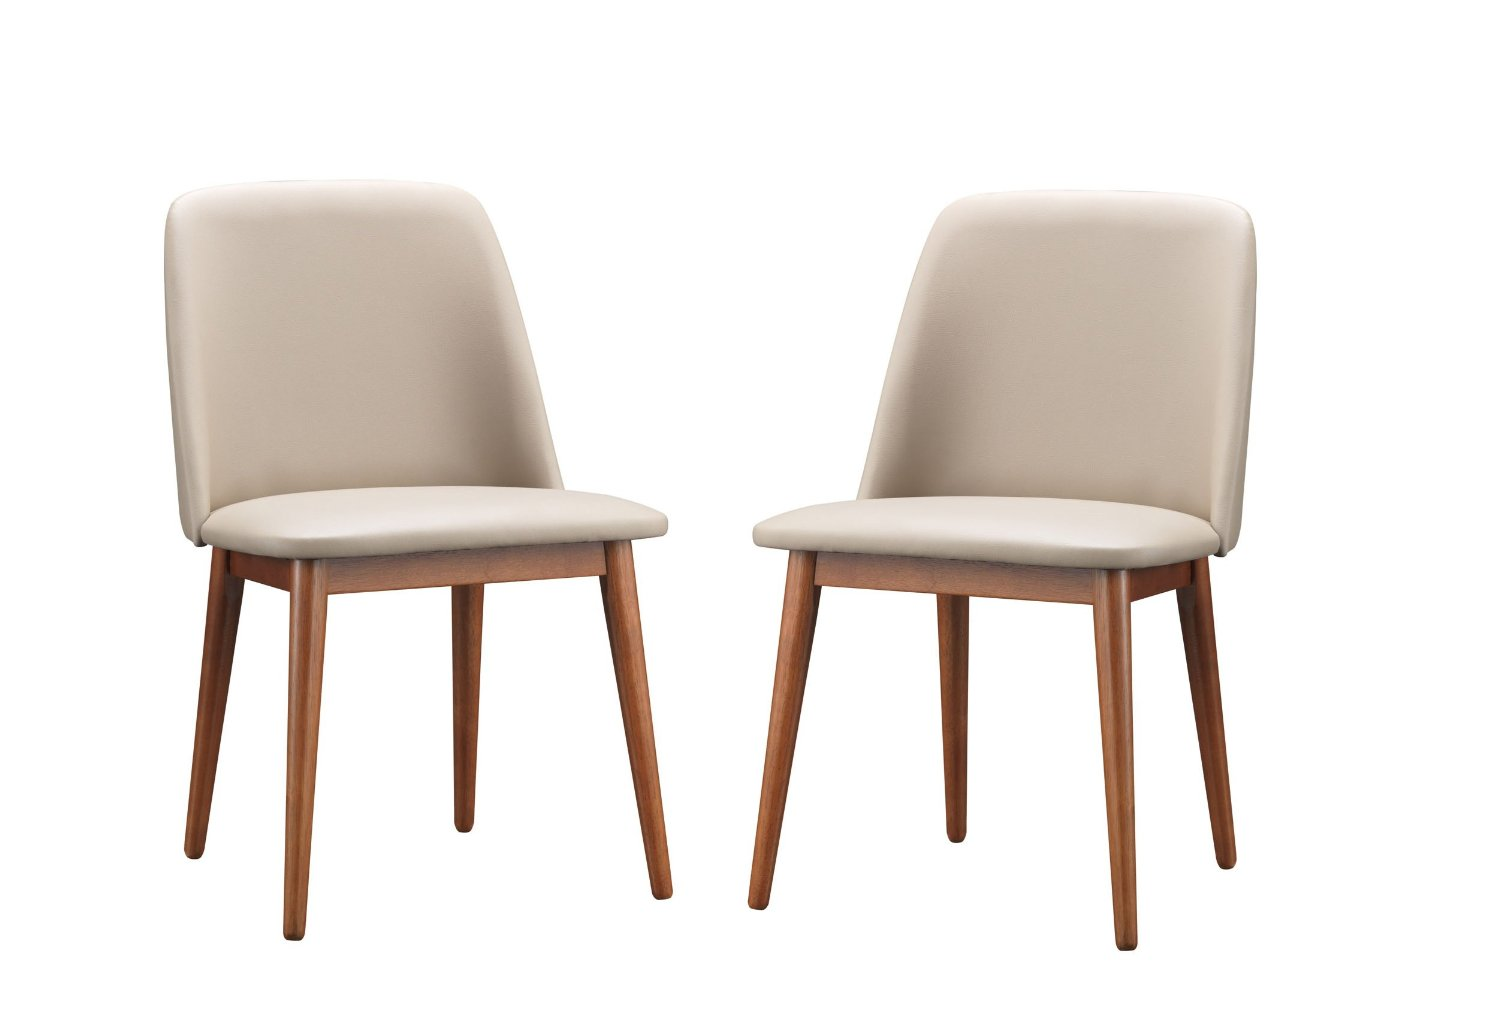 Baxton Studio Set of 2 Lavin Mid-Century Dark Walnut Wood and Beige Faux Leather Dining Chairs